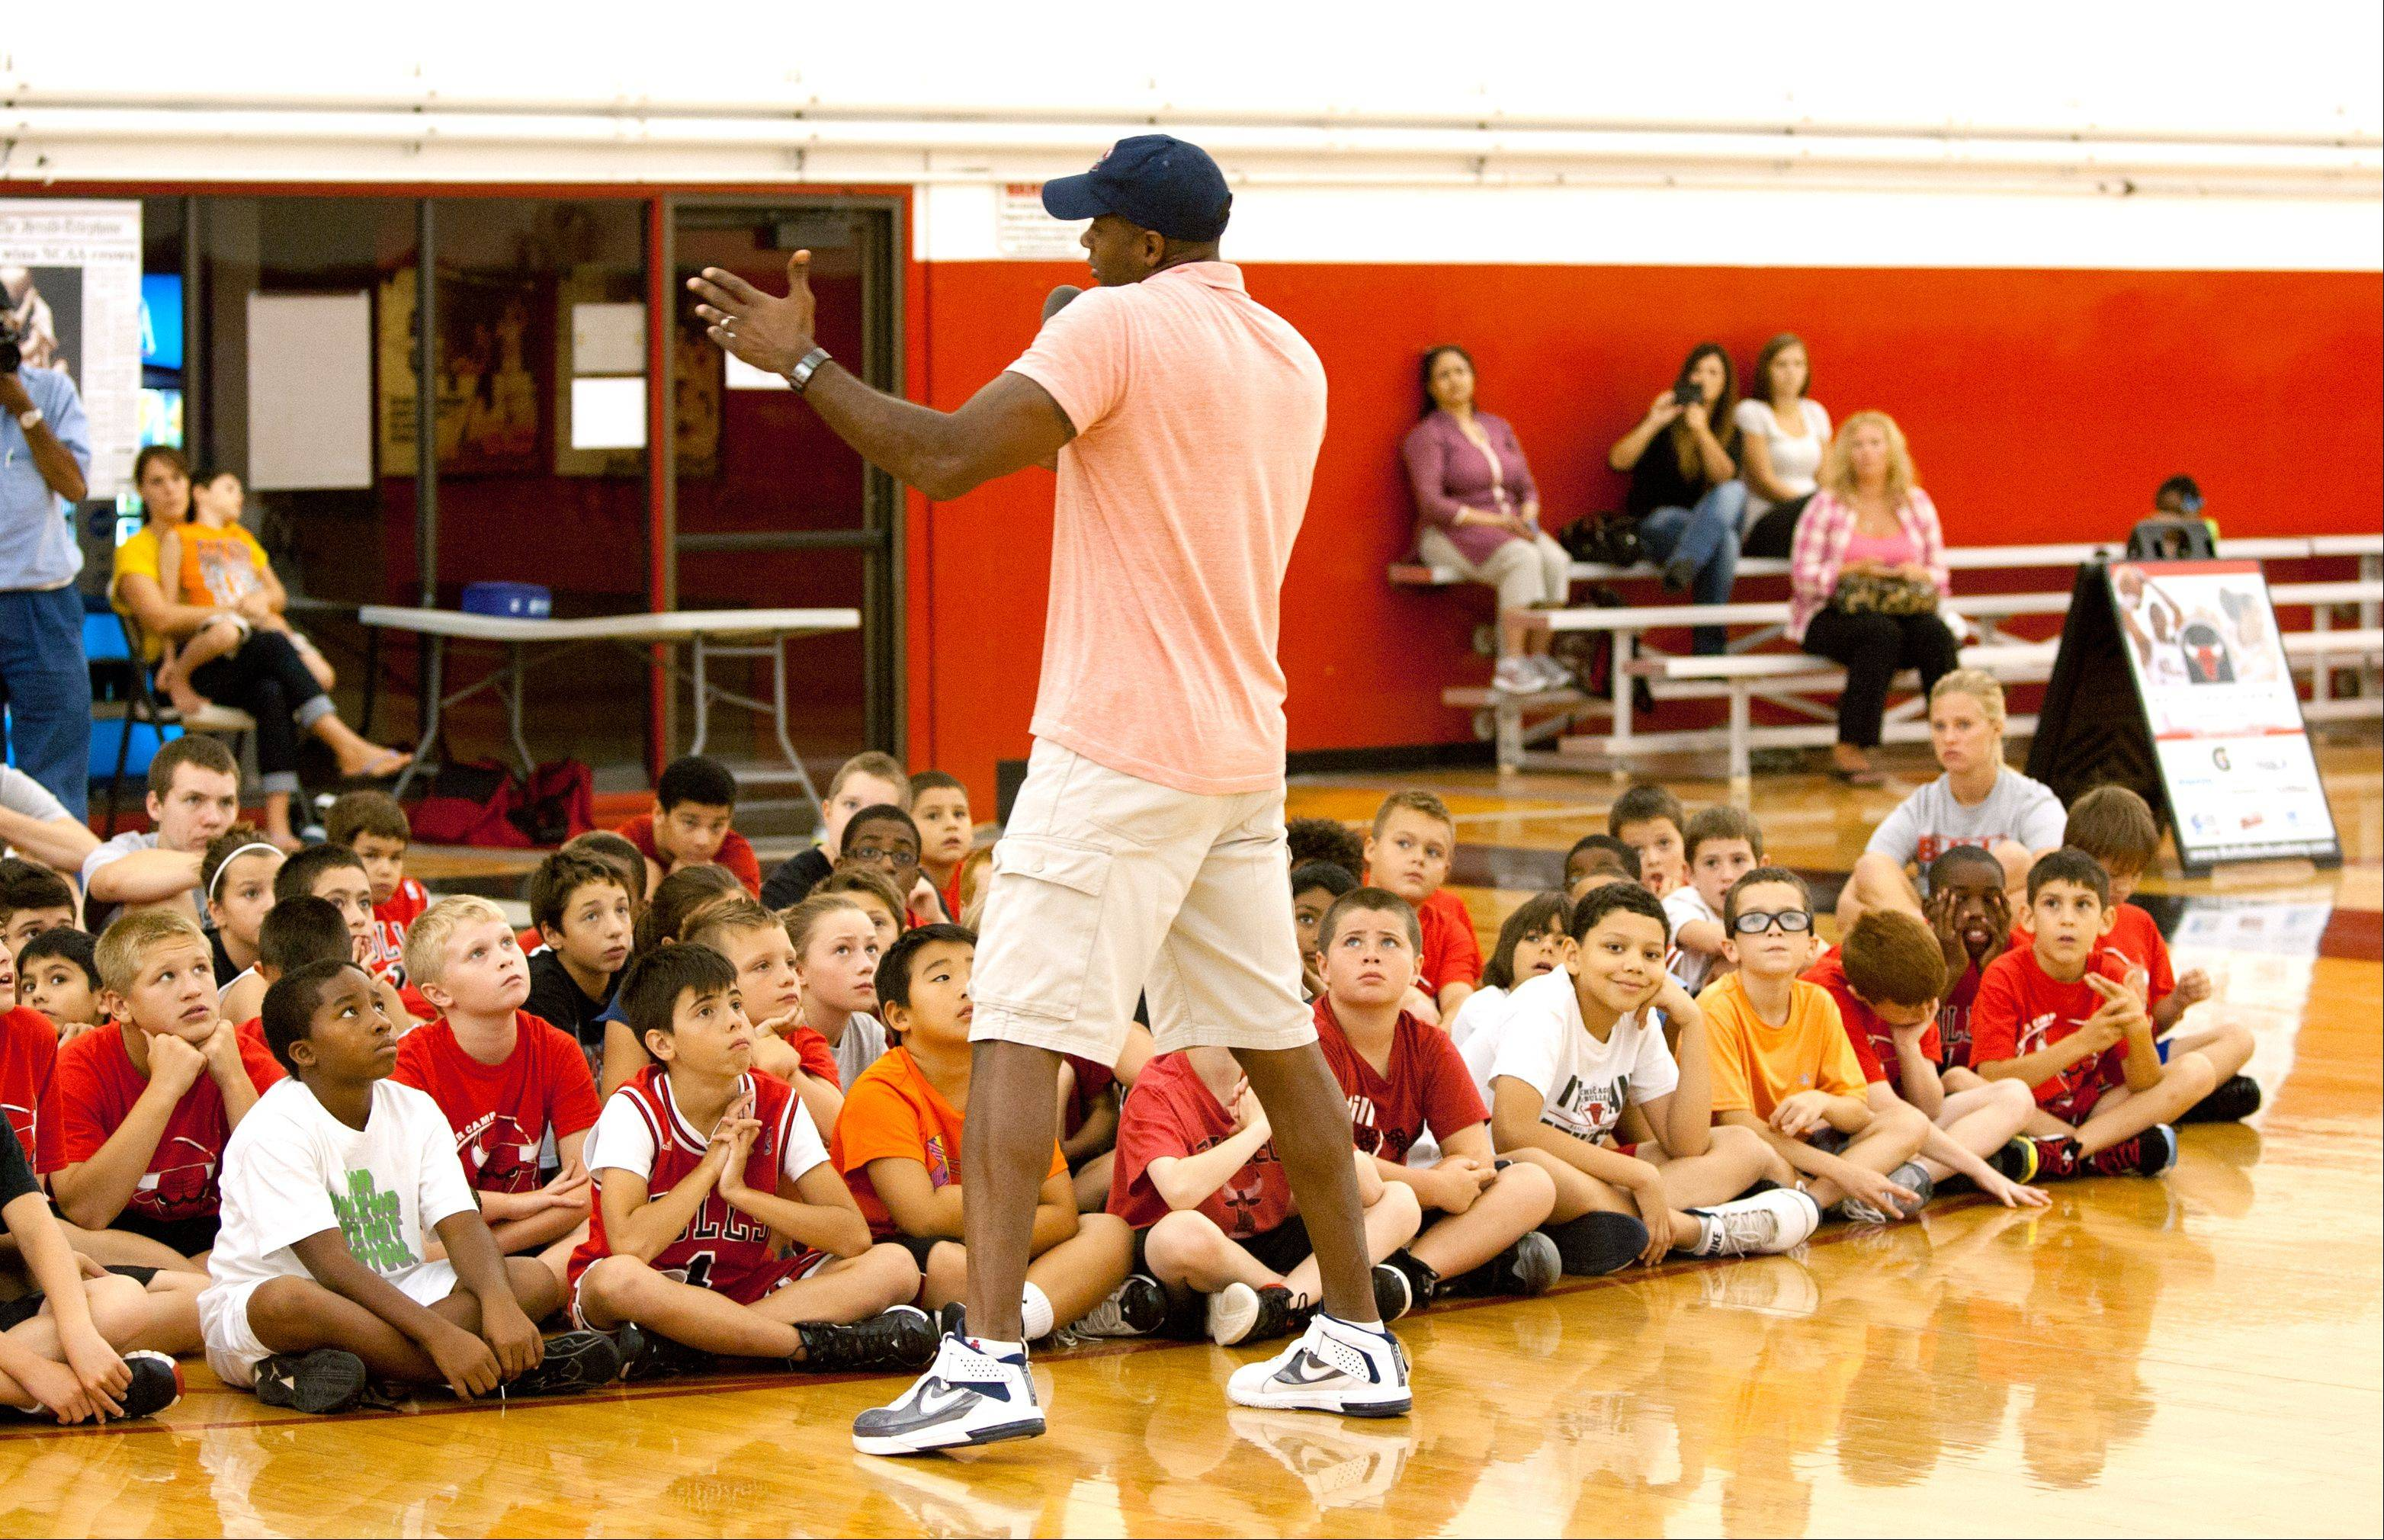 Kendall Gill to campers: Hard work wins in basketball, life